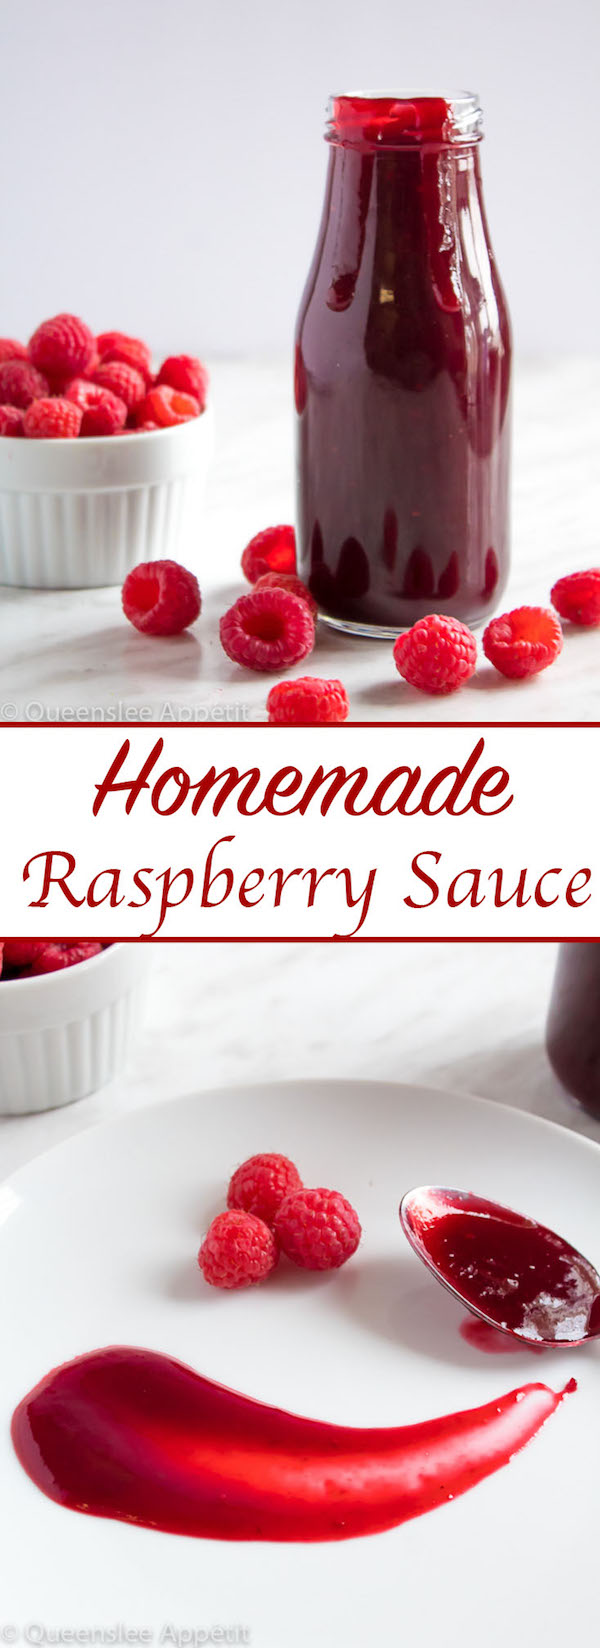 This Homemade Raspberry Sauce is perfect for filling cakes and topping waffles, pancakes, scones, cheesecake and so much more!